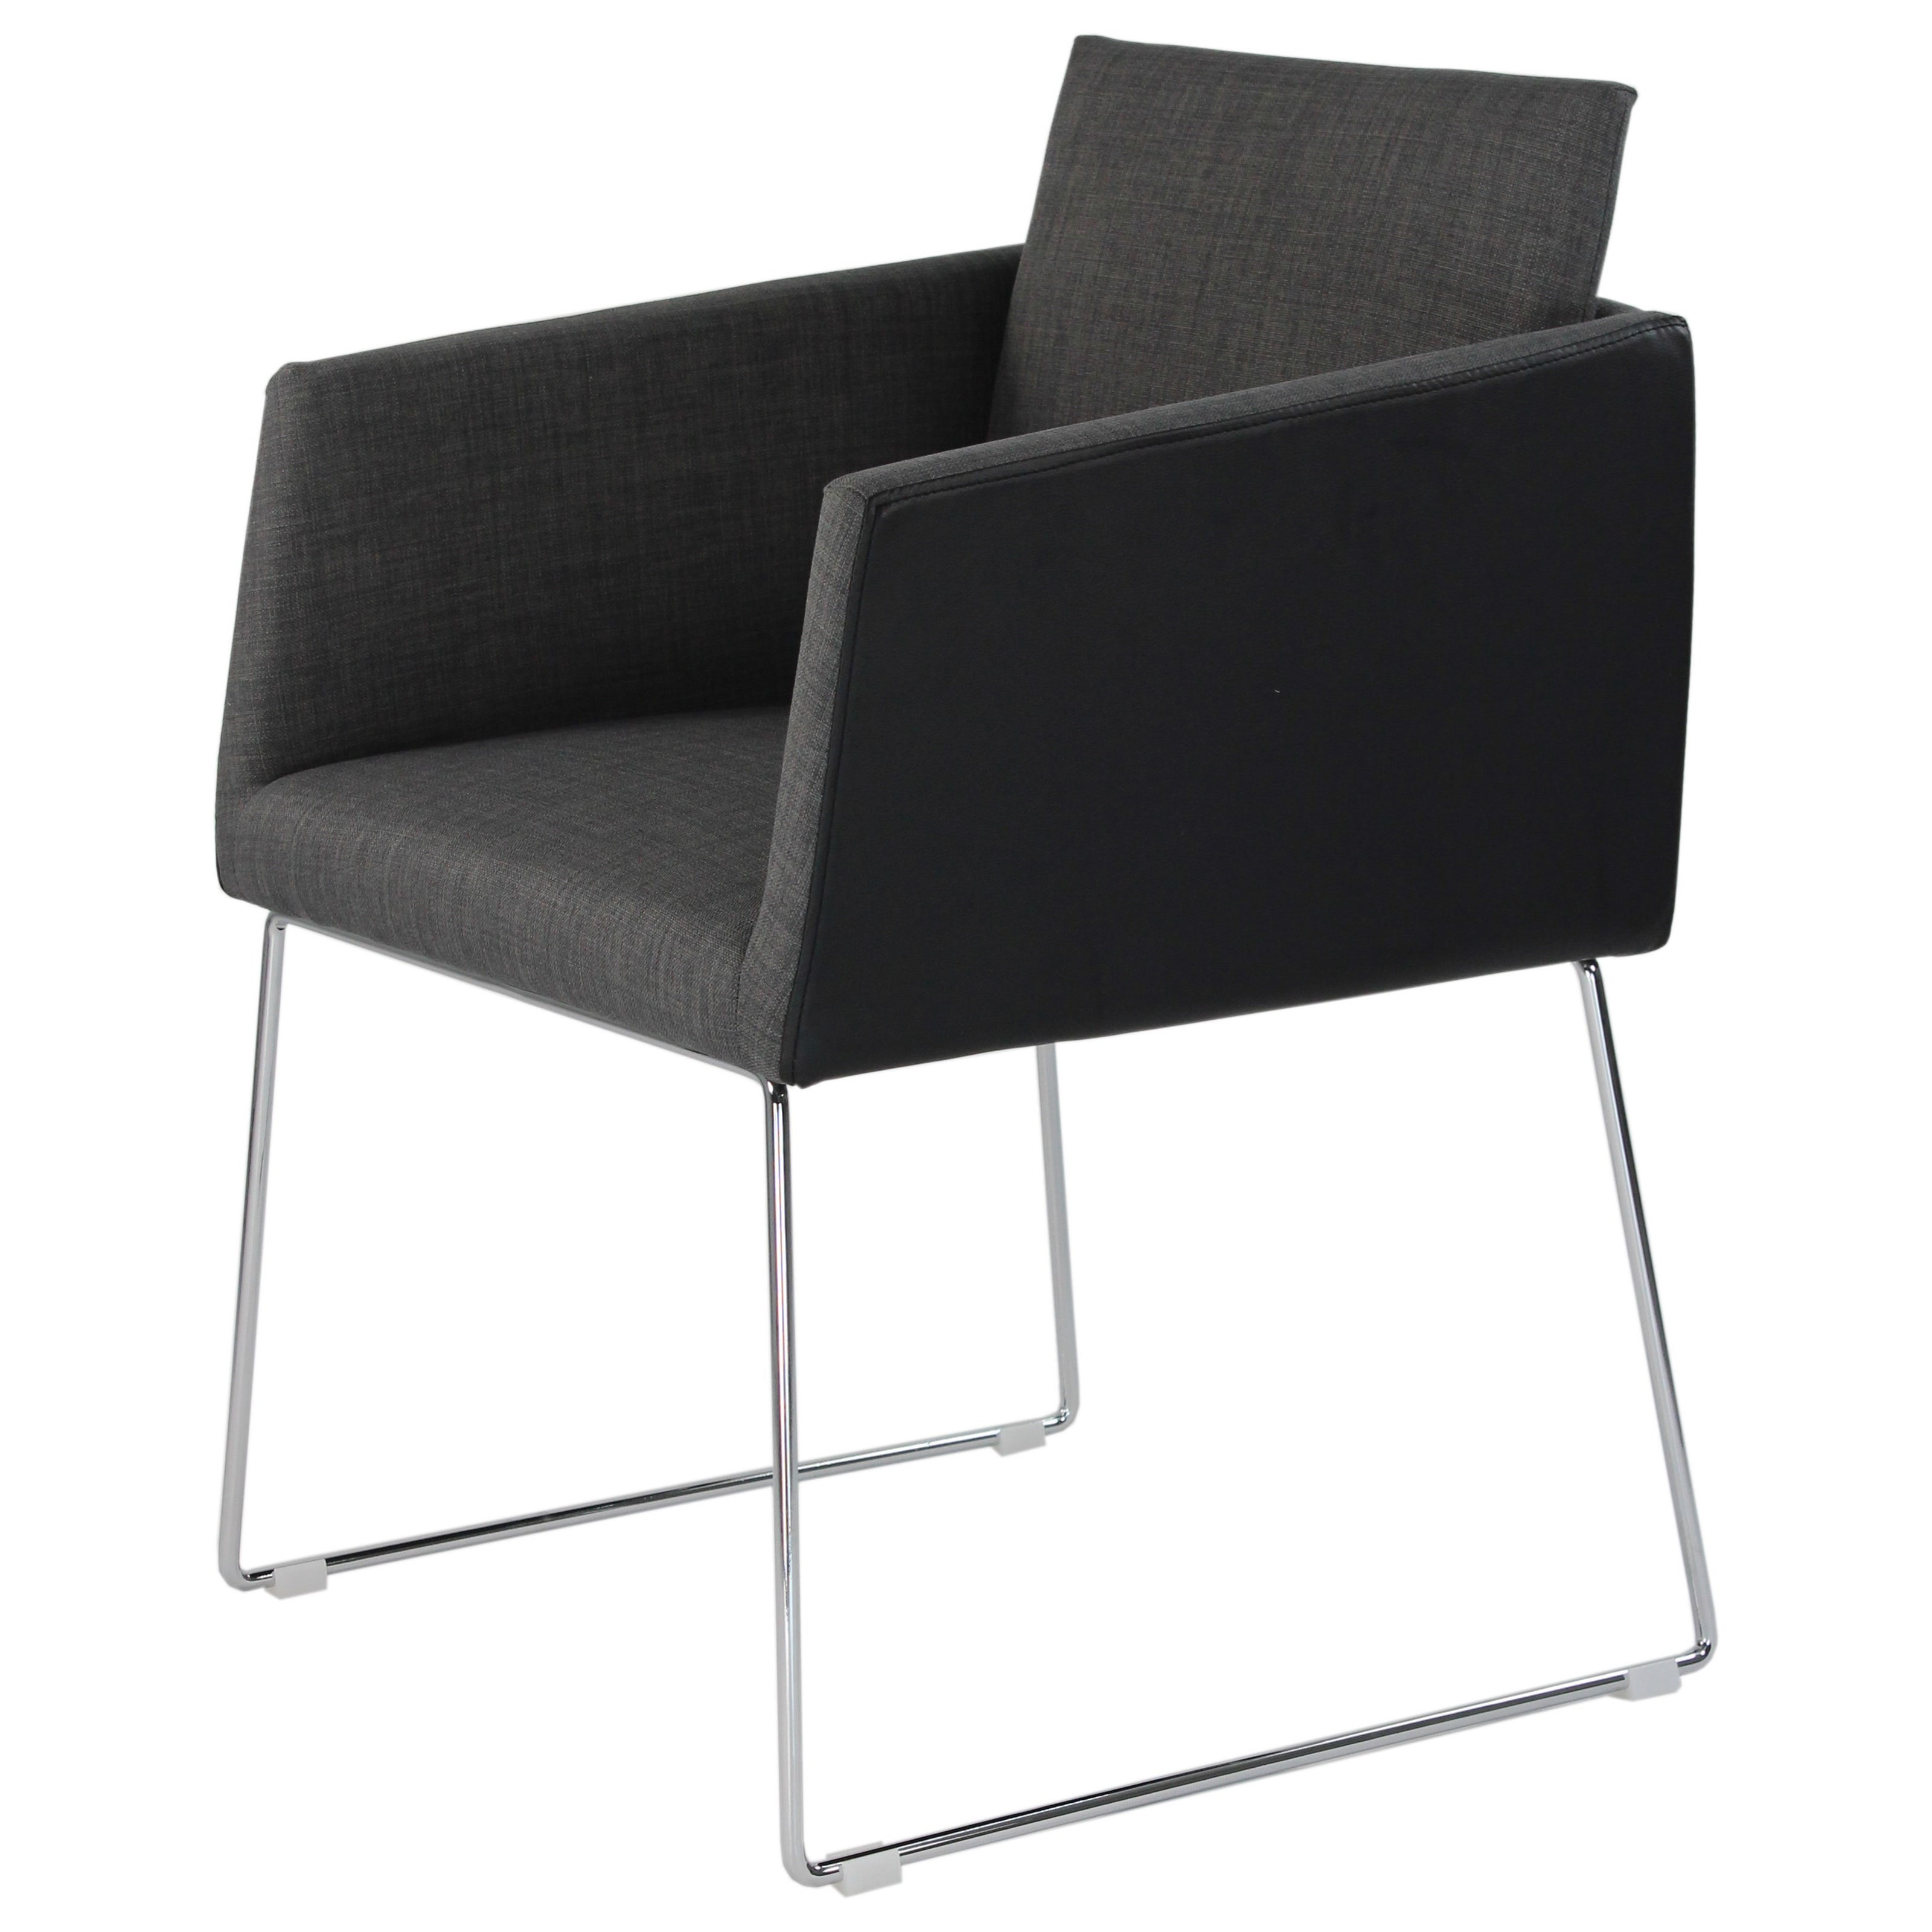 Park Arm Chair Black by Moe's Home Collection at Stoney Creek Furniture